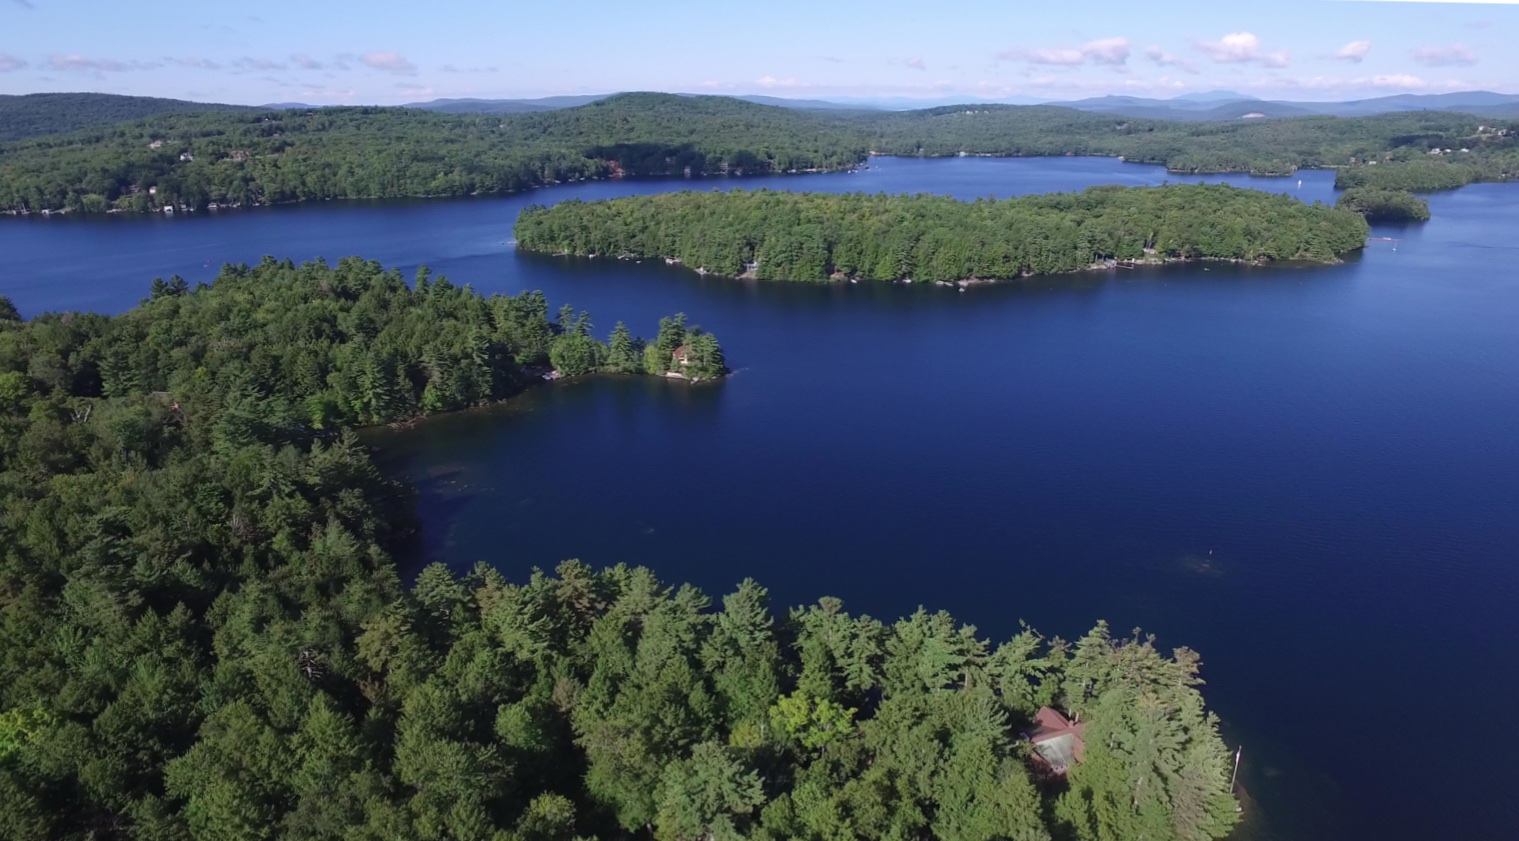 Land for Sale at Bowles, Newbury Newbury, New Hampshire, 03255 United States